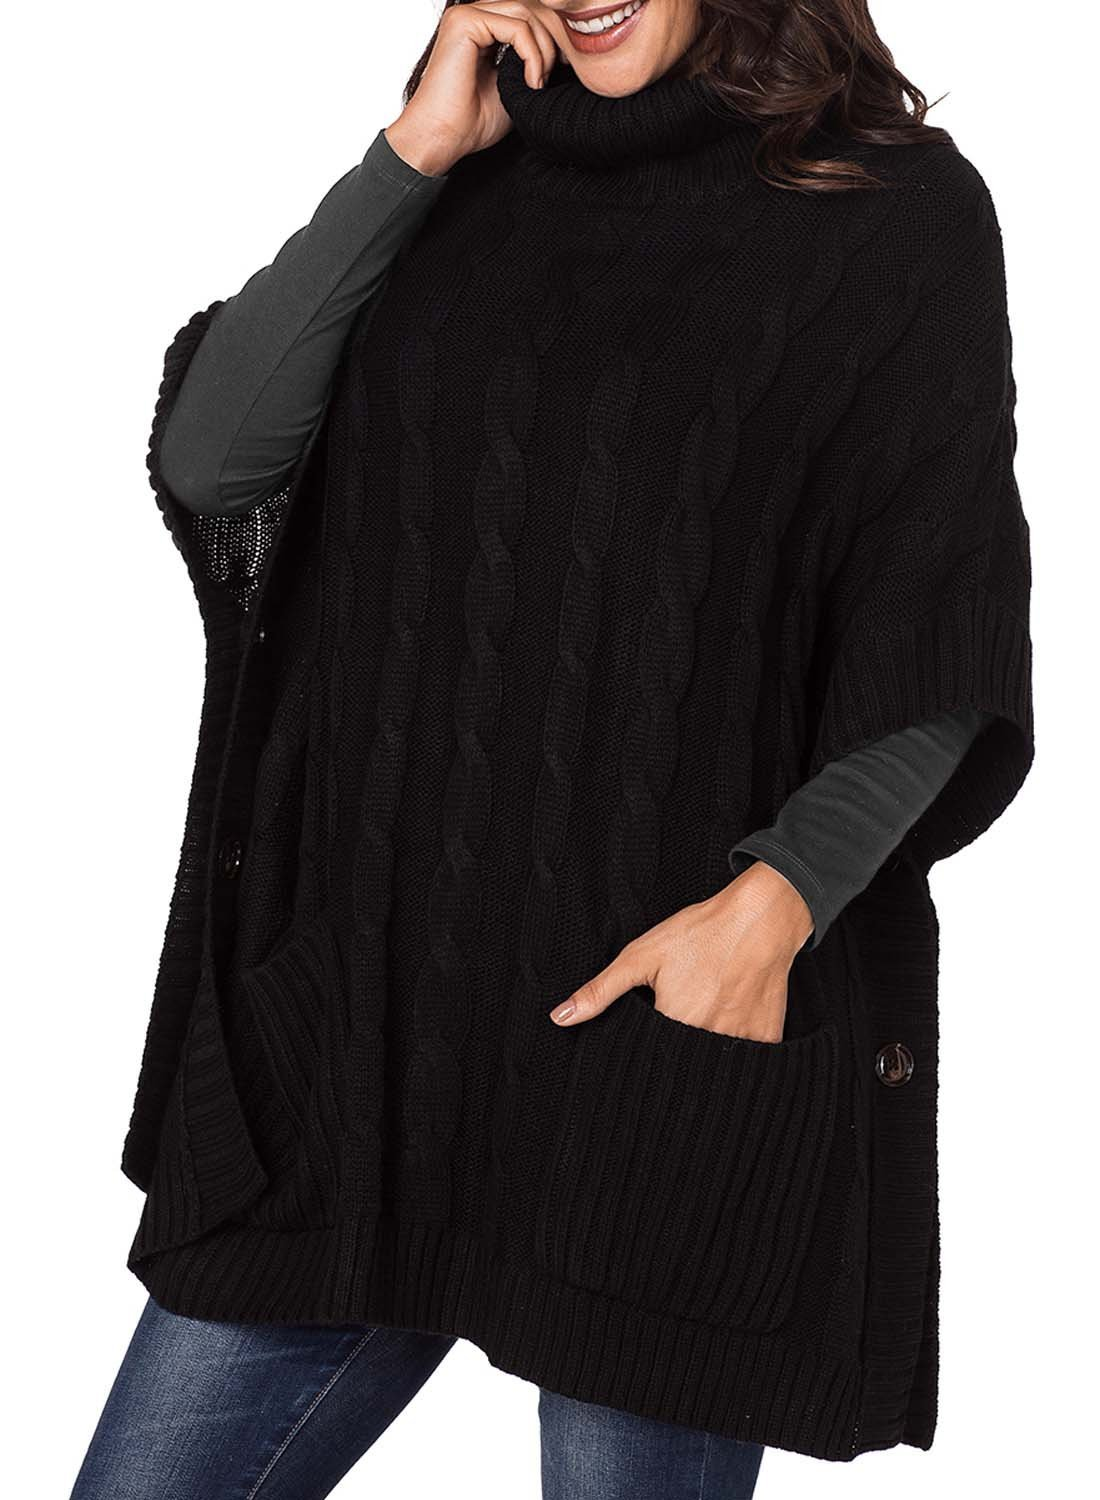 Elapsy Womens Ladies Knit Turtleneck Batwing Sleeve Casual Warm Pockets Style Tunic Poncho Pullover Sweater Oversize Black by Elapsy (Image #3)